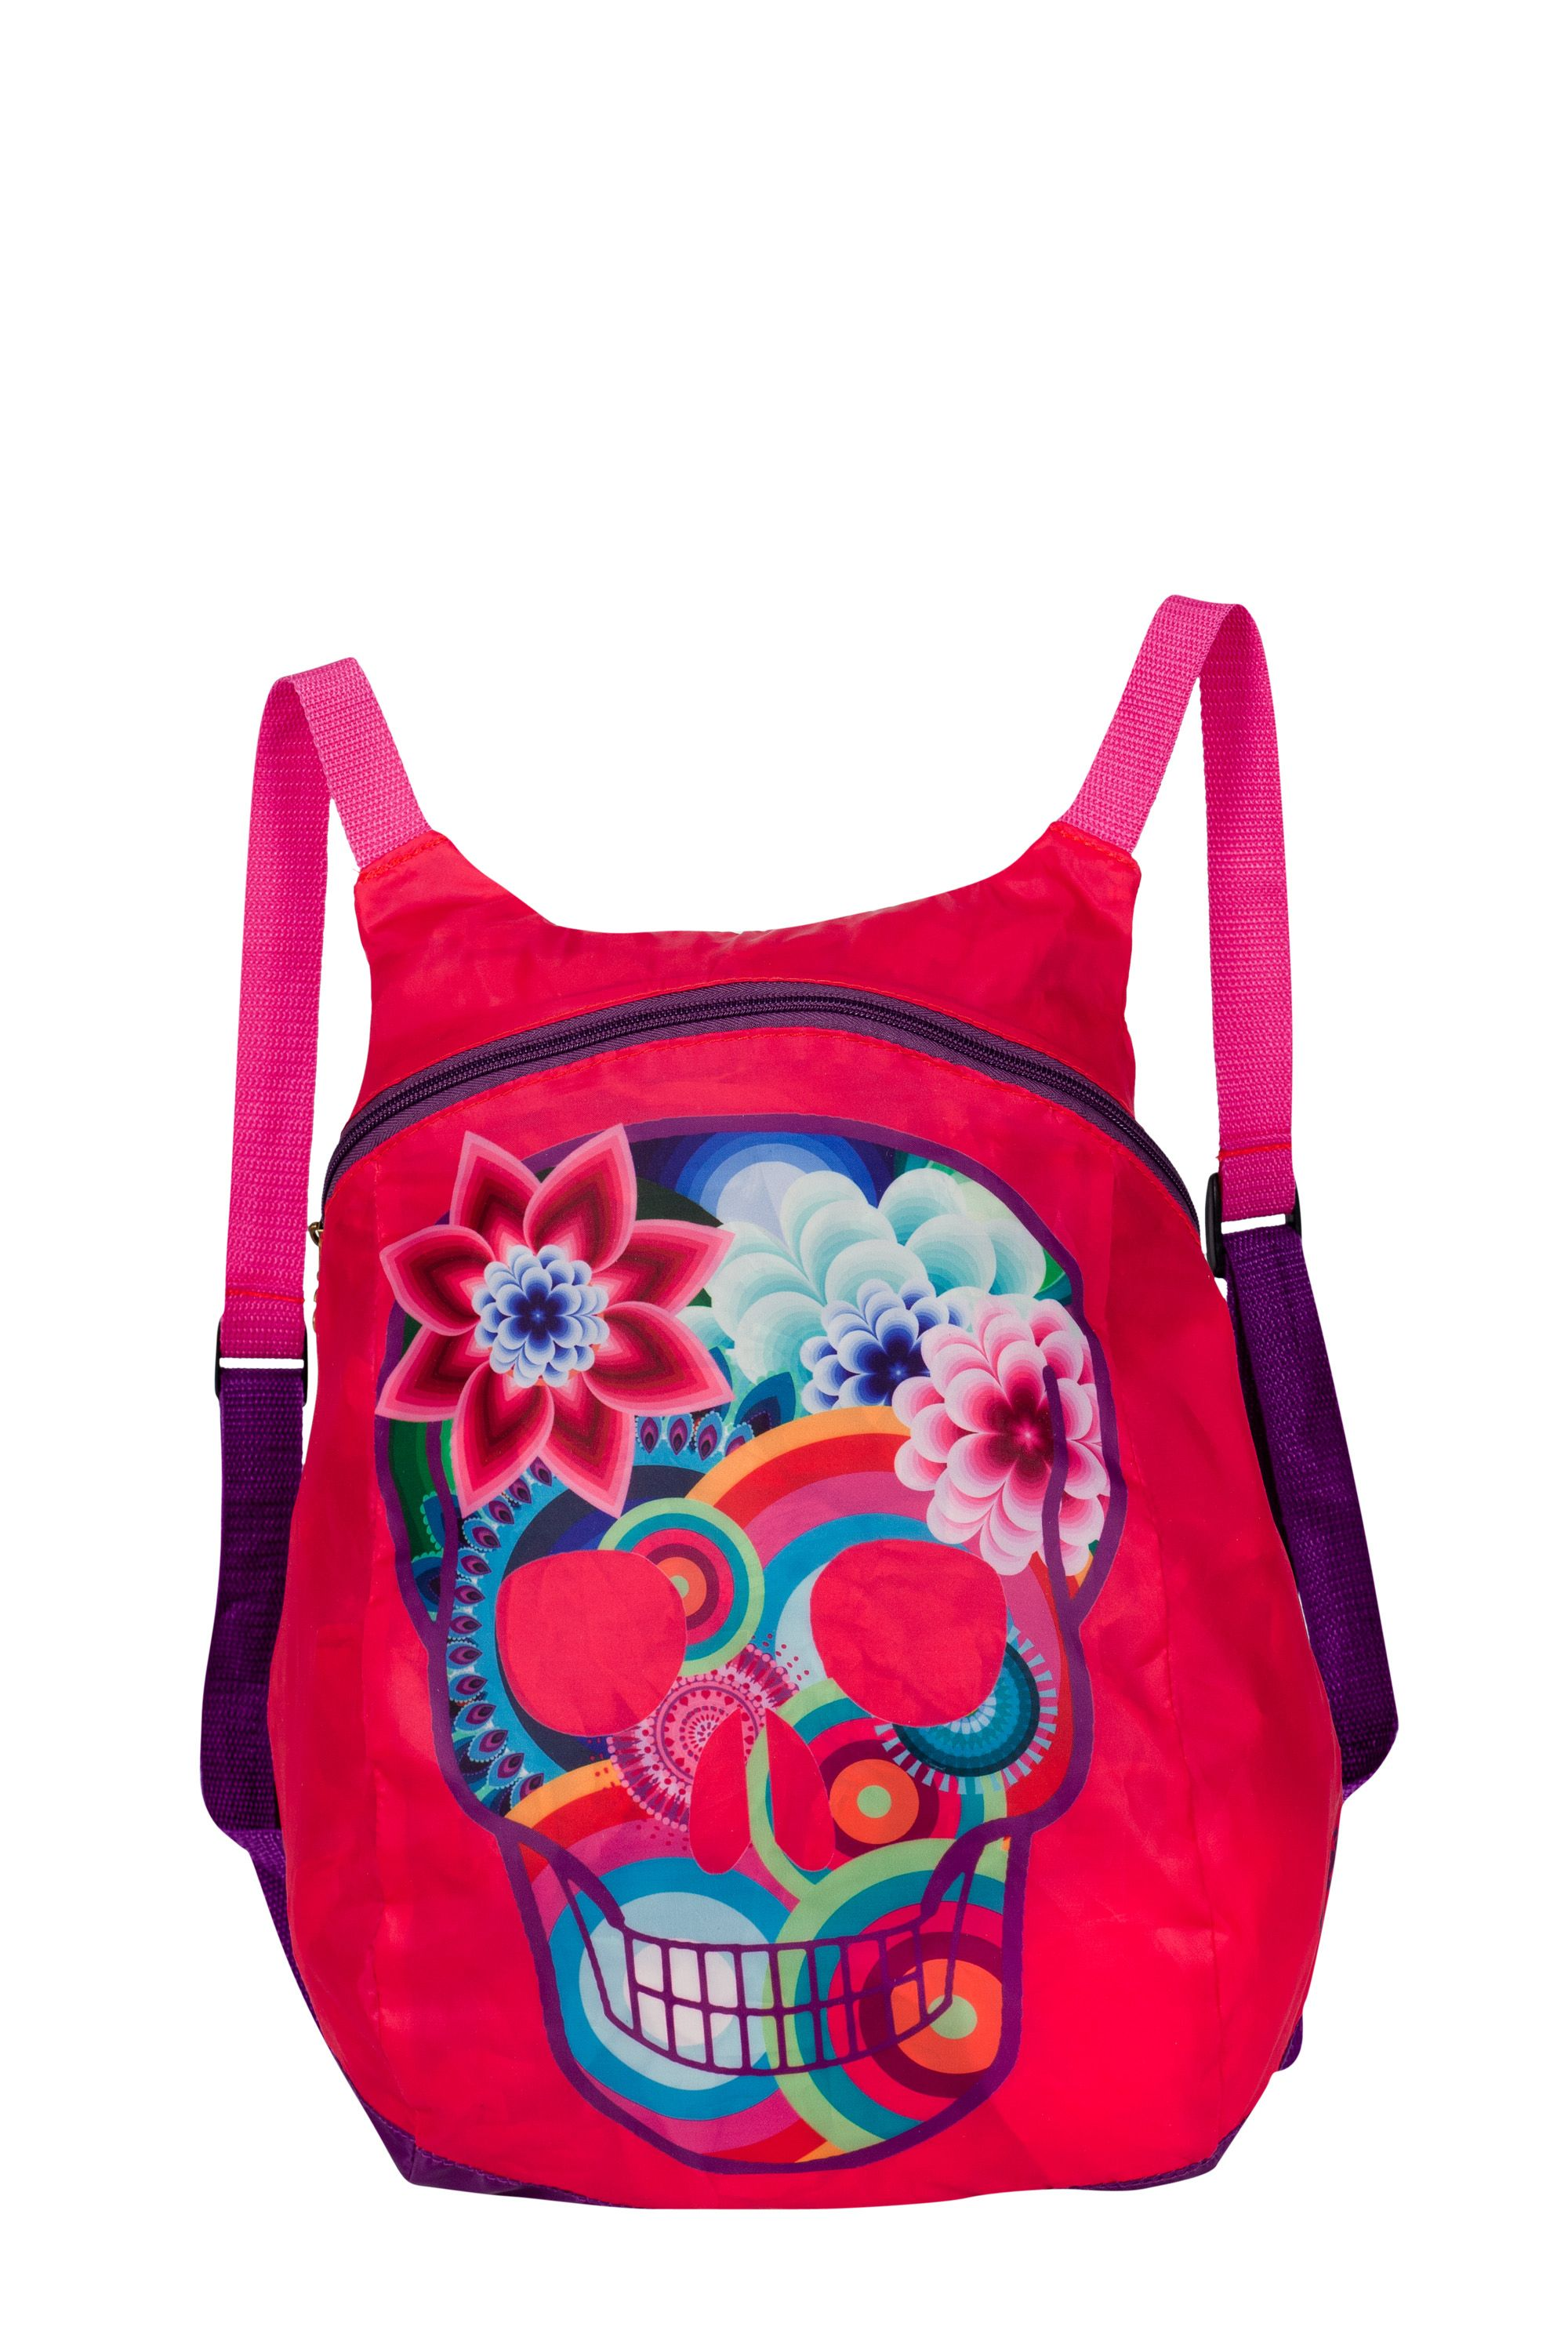 Girls skull print woven backpack